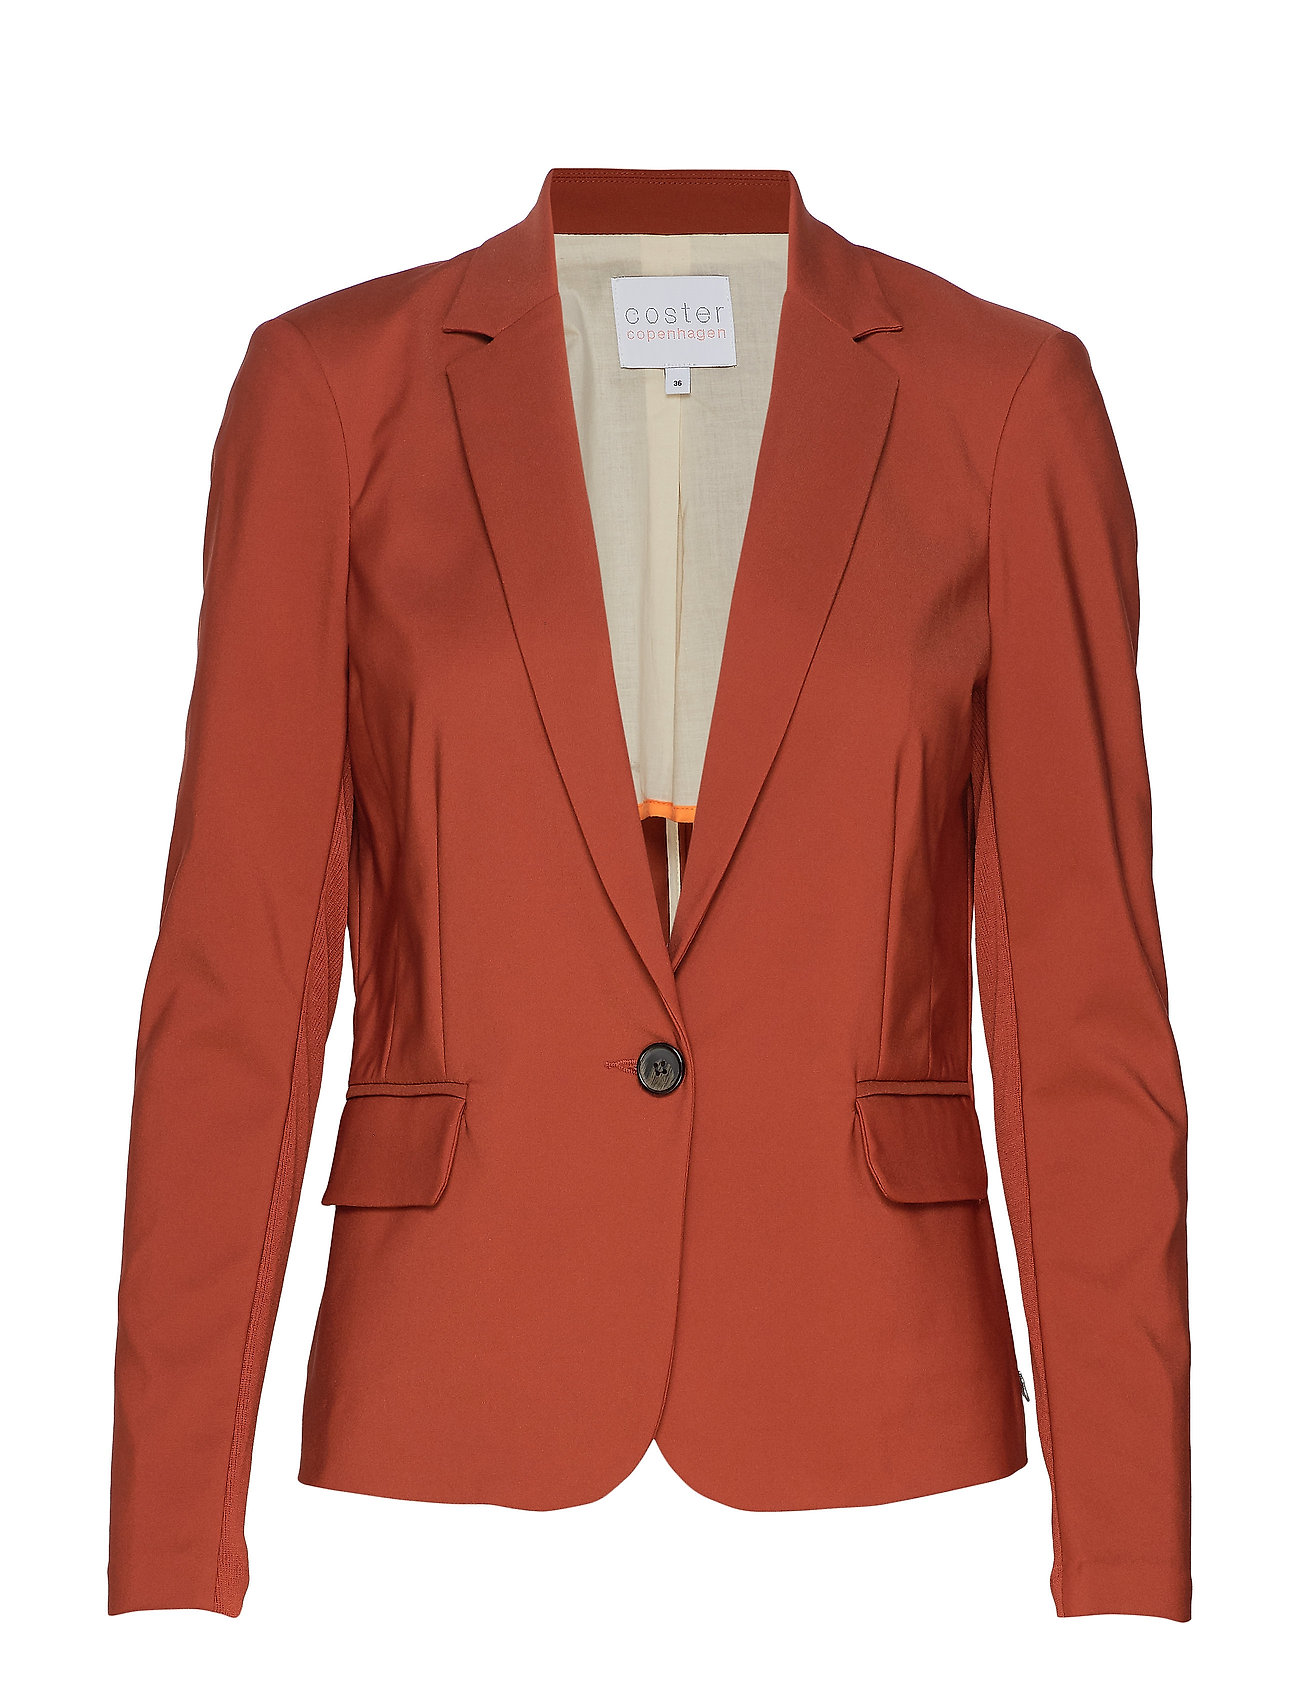 Coster Copenhagen Suit jacket - BURNT HENNA